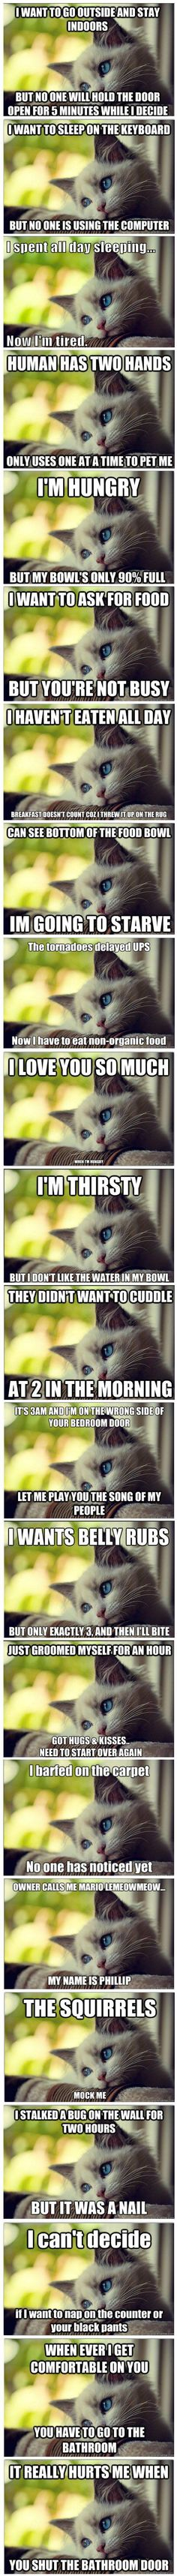 First World Cat Problems-----------you#ve probably seen this but just in case you missed it